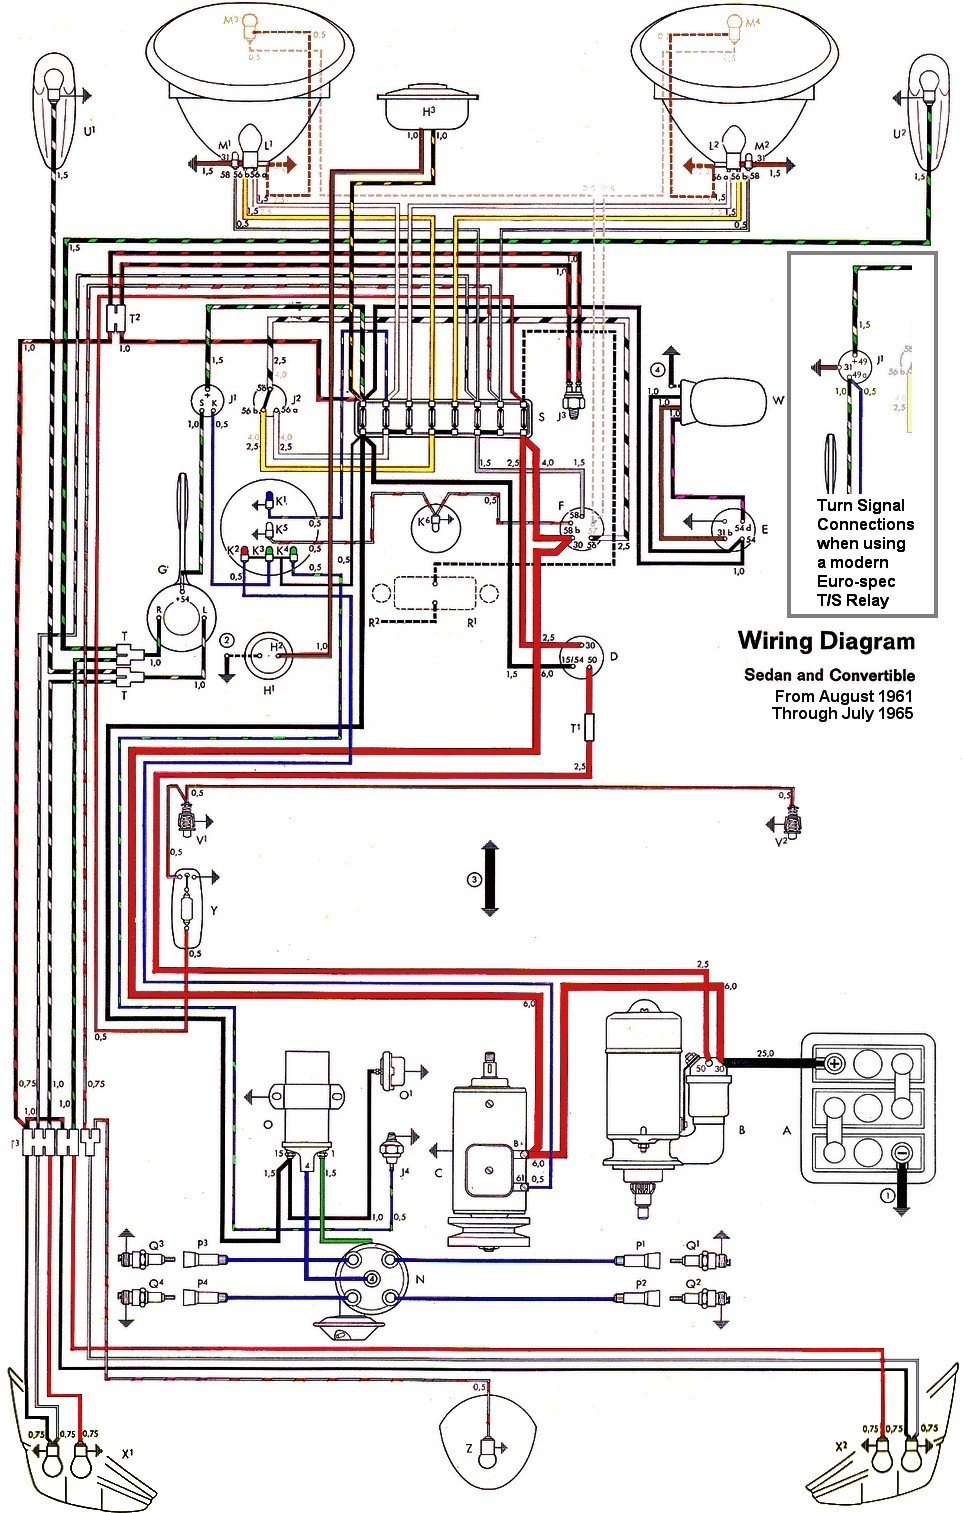 bug_62 65withinset thesamba com type 1 wiring diagrams 1971 vw beetle wiring diagram at nearapp.co